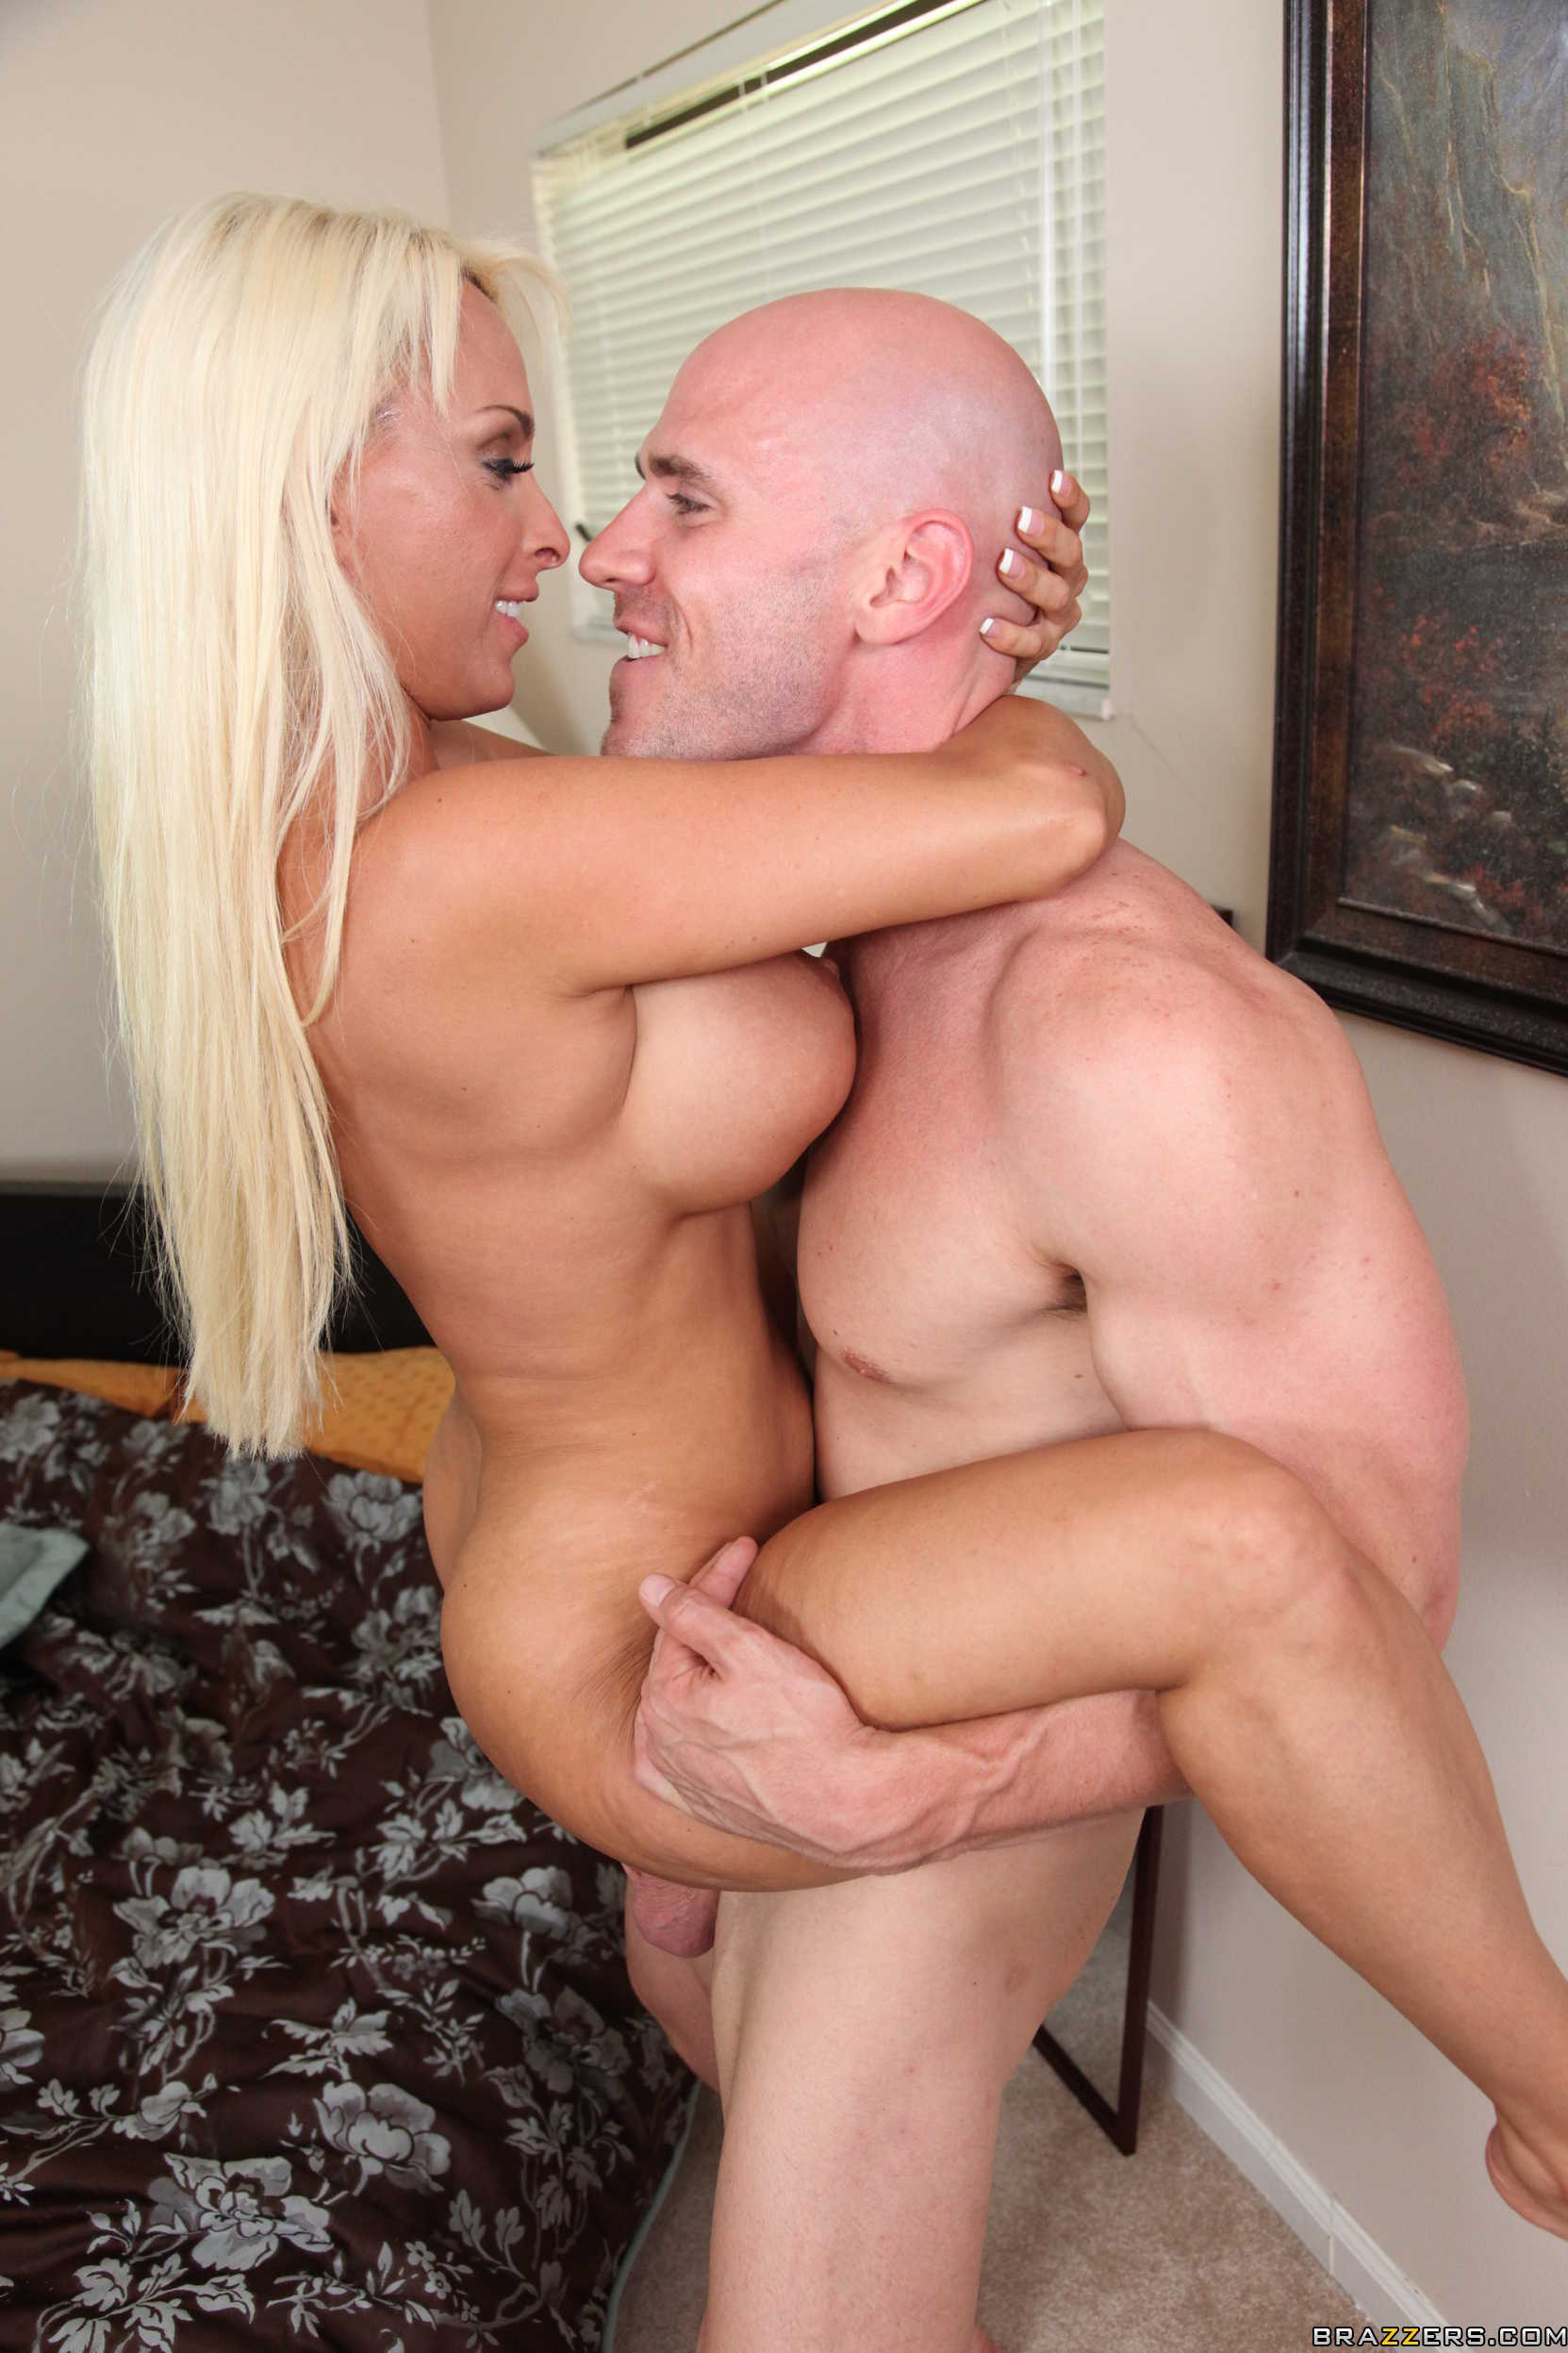 Seems impossible. Holly halston porn blow job consider